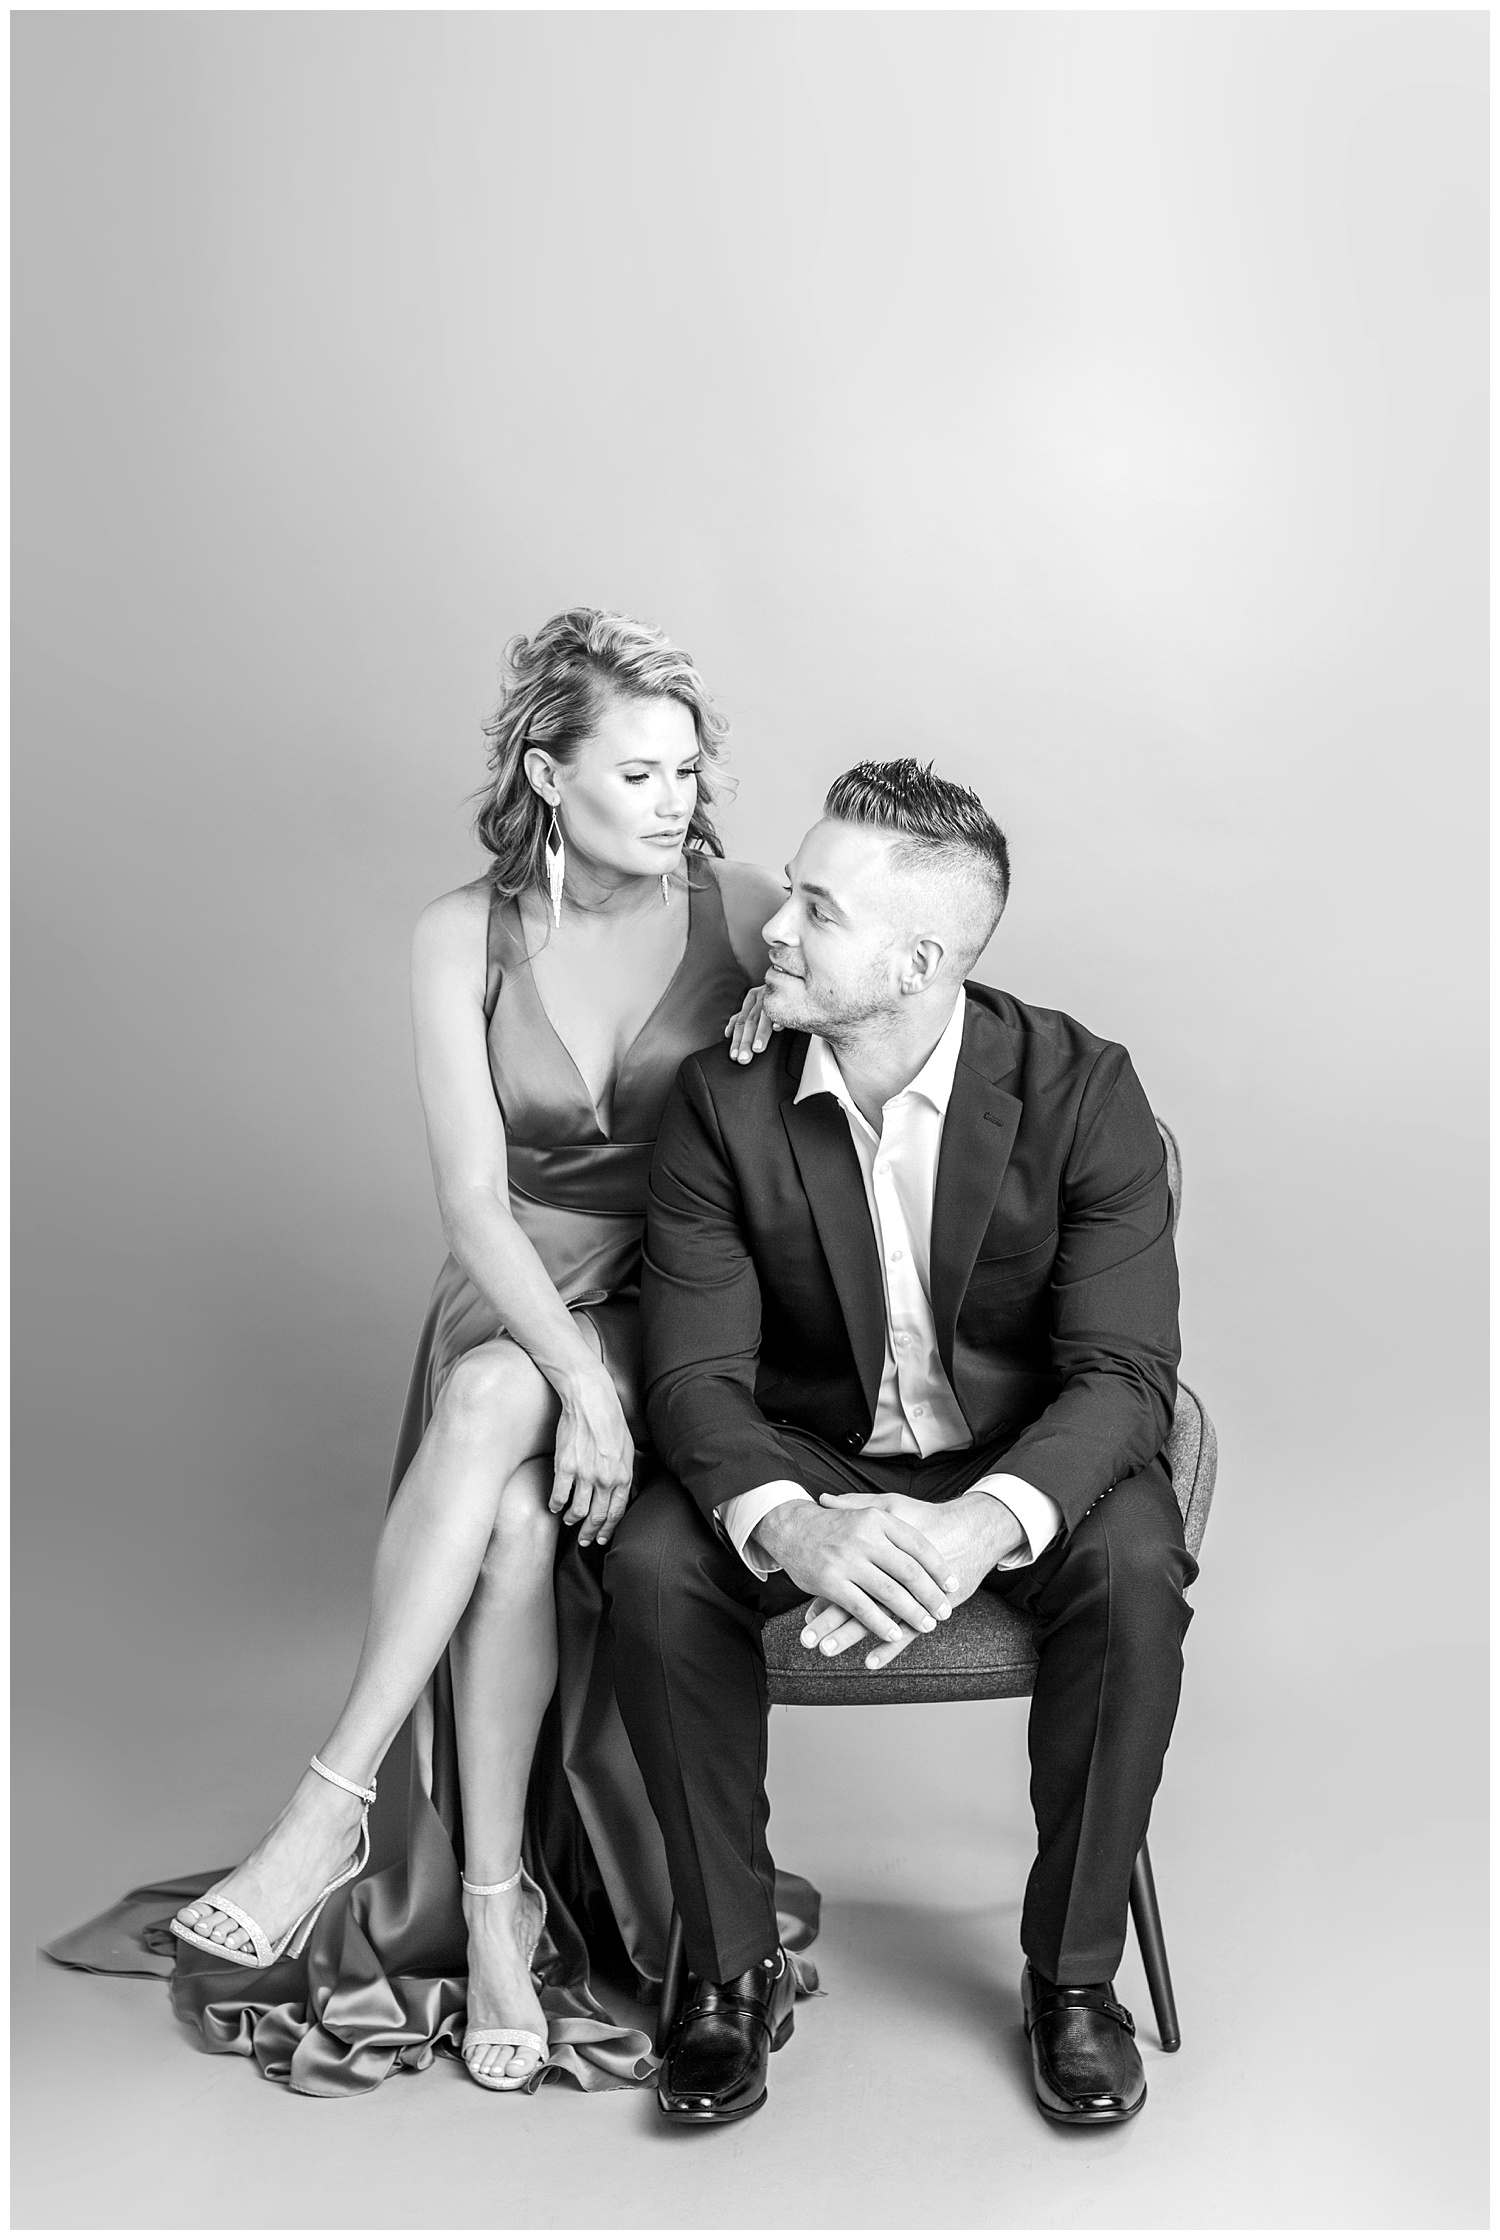 Glamorous Vanity Fair cover model couple pose in high fashion formal attire | Iowa Wedding Photographer